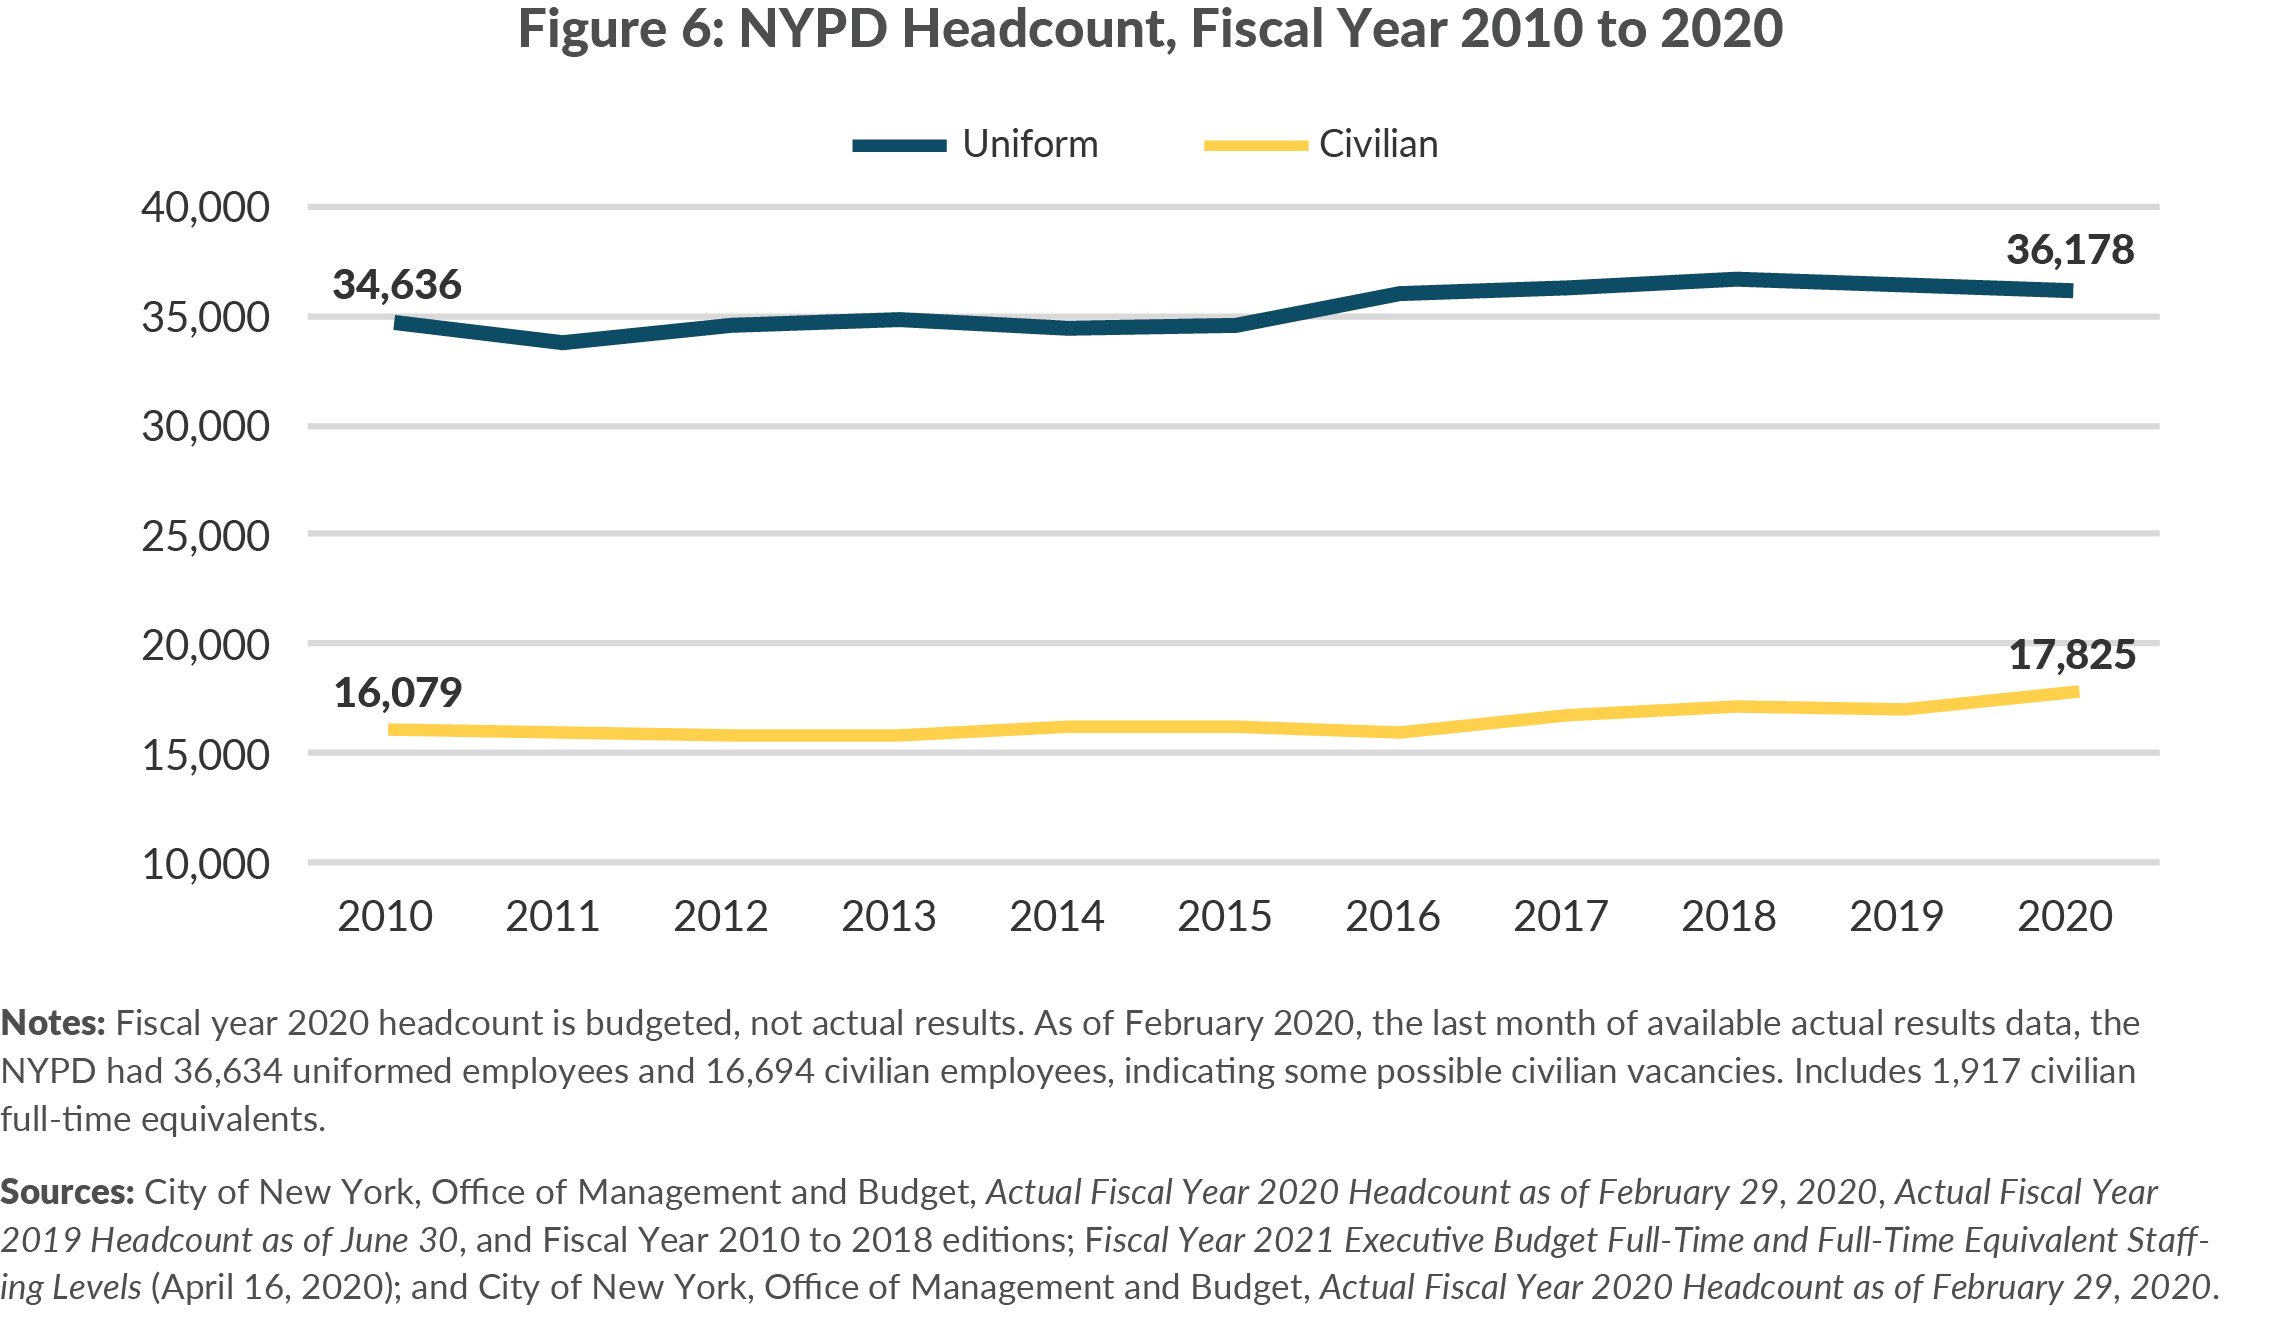 Figure 6. NYPD Headcount, Fiscal Year 2010 to 2020